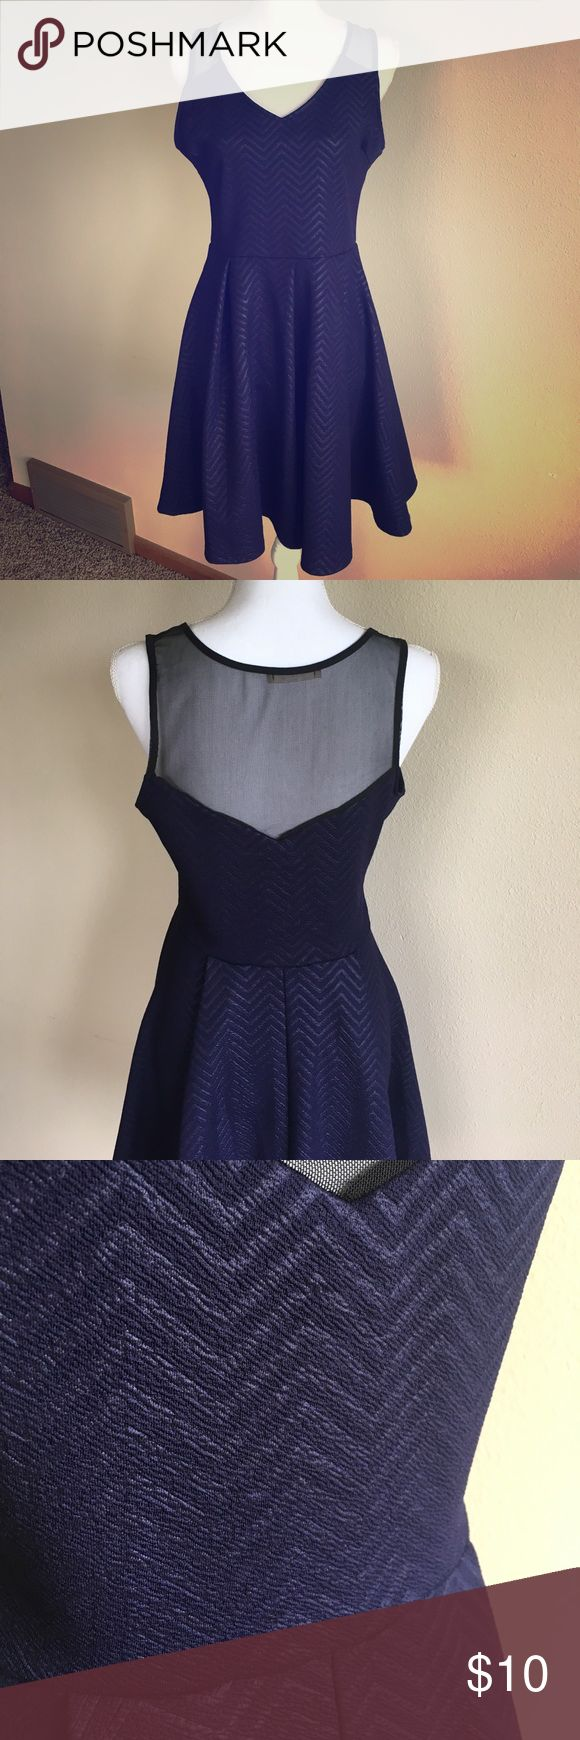 Navy Blue Cocktail Dress Navy blue chevron dress with cute mesh back and pleated skirt. Like new condition Lush Dresses